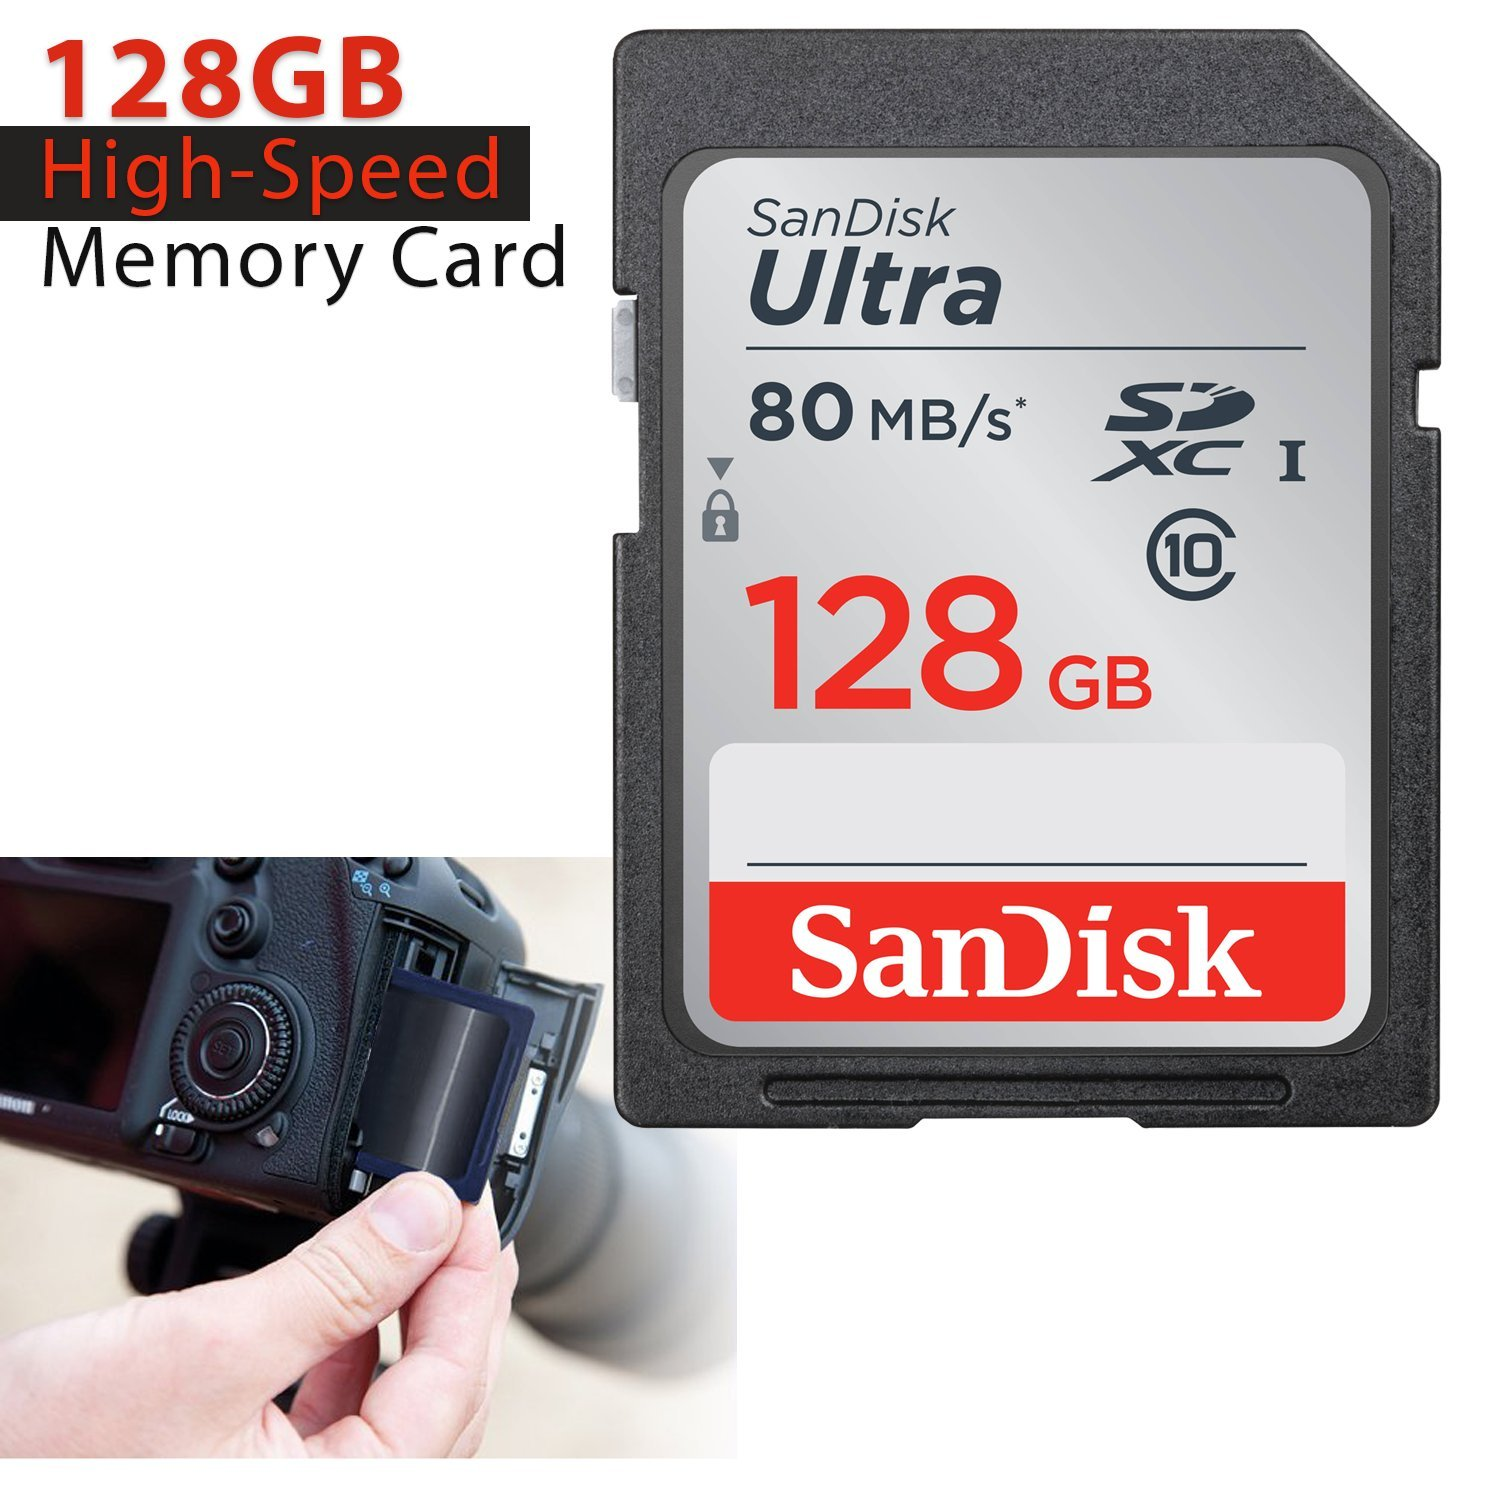 SanDisk 128GB Ultra Class 10 SDXC UHS-I Memory Card + Card Reader for Canon DSLR Cameras Including Canon EOS Rebel T7i T7 T6i T6S T6 T5i T5 T3i SL2 ...